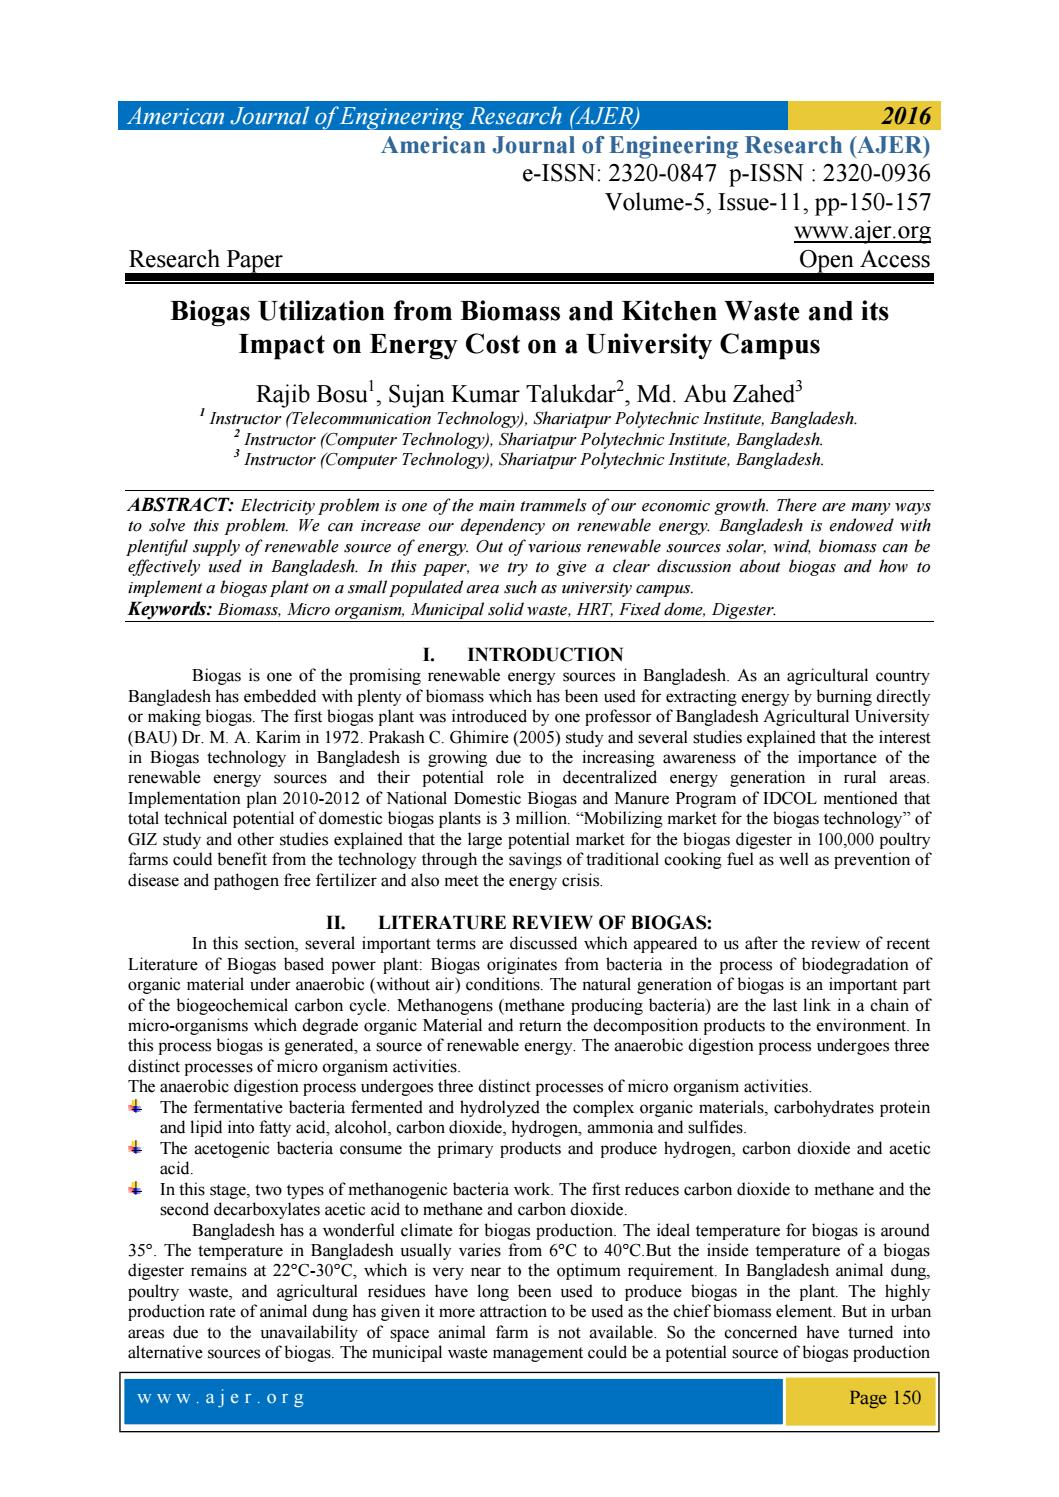 Biogas Utilization From Biomass And Kitchen Waste And Its